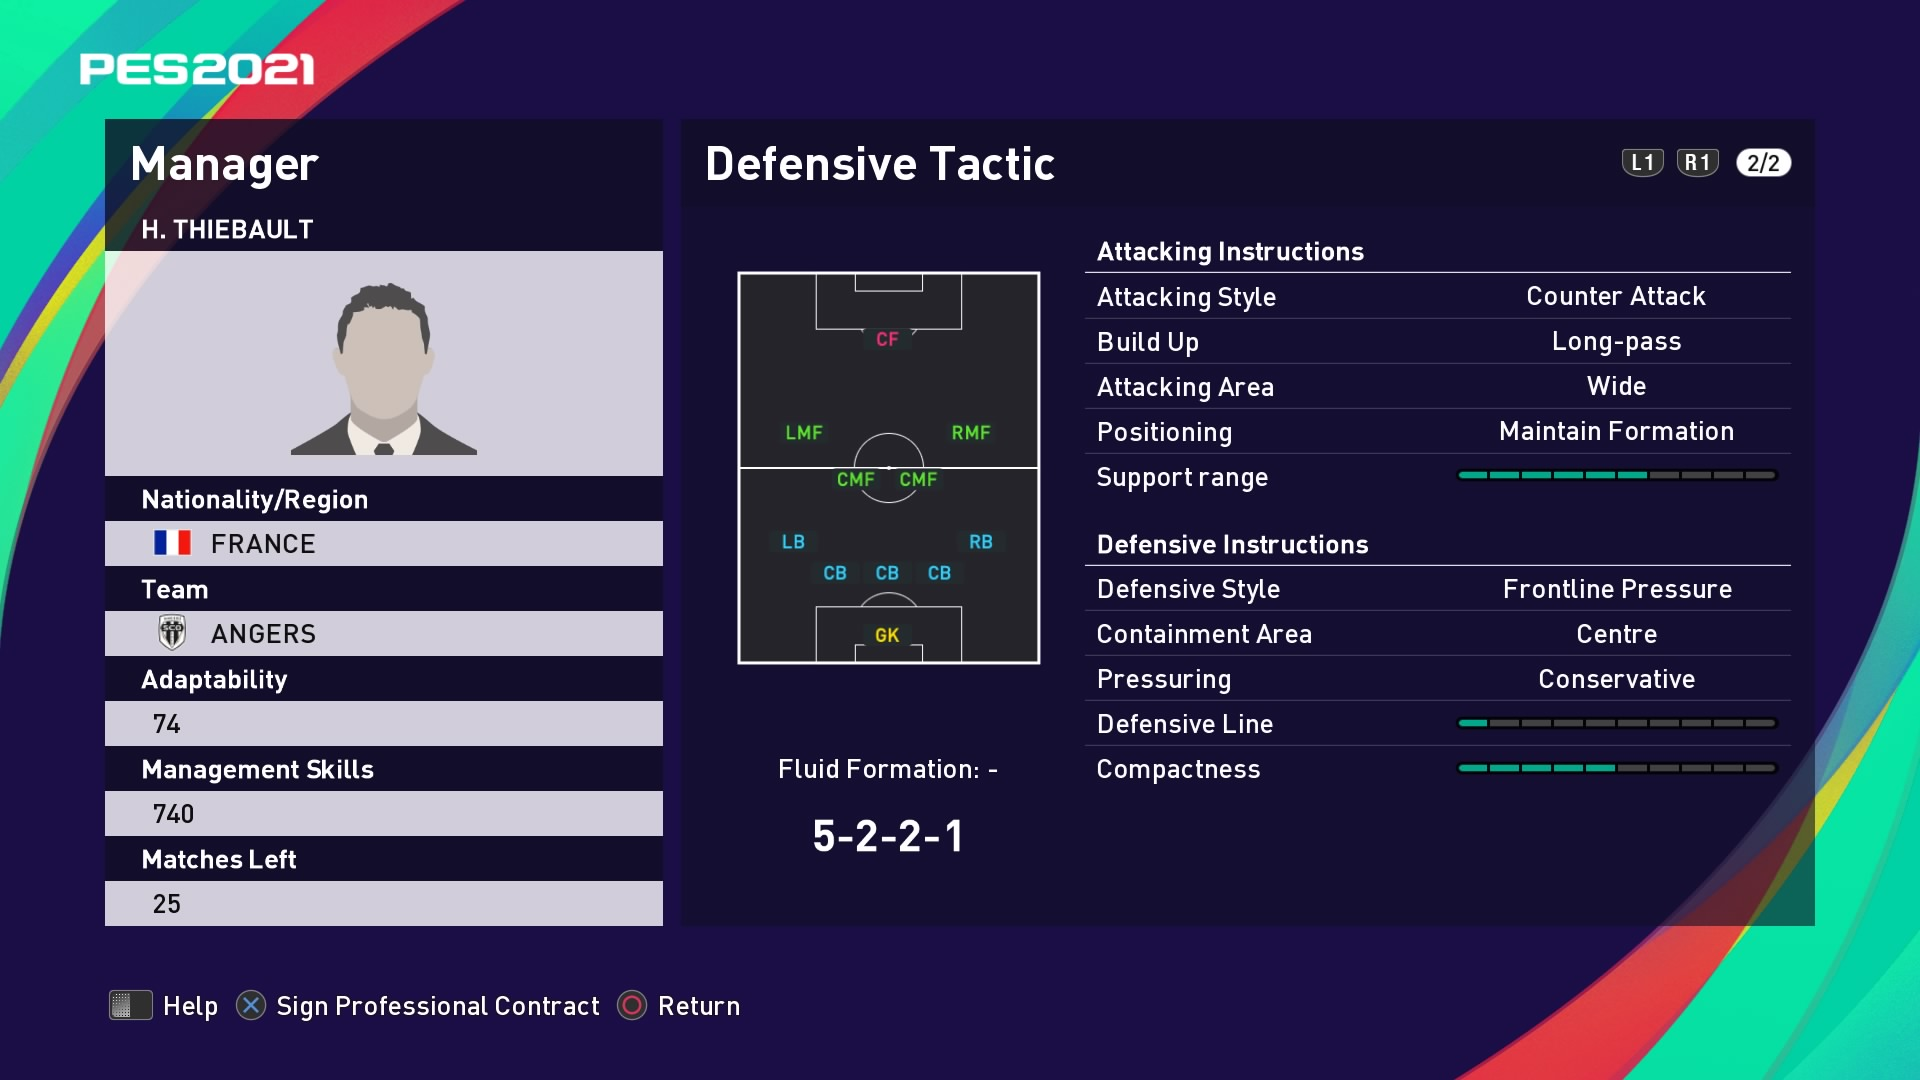 H. Thiebault (Stéphane Moulin ) Defensive Tactic in PES 2021 myClub